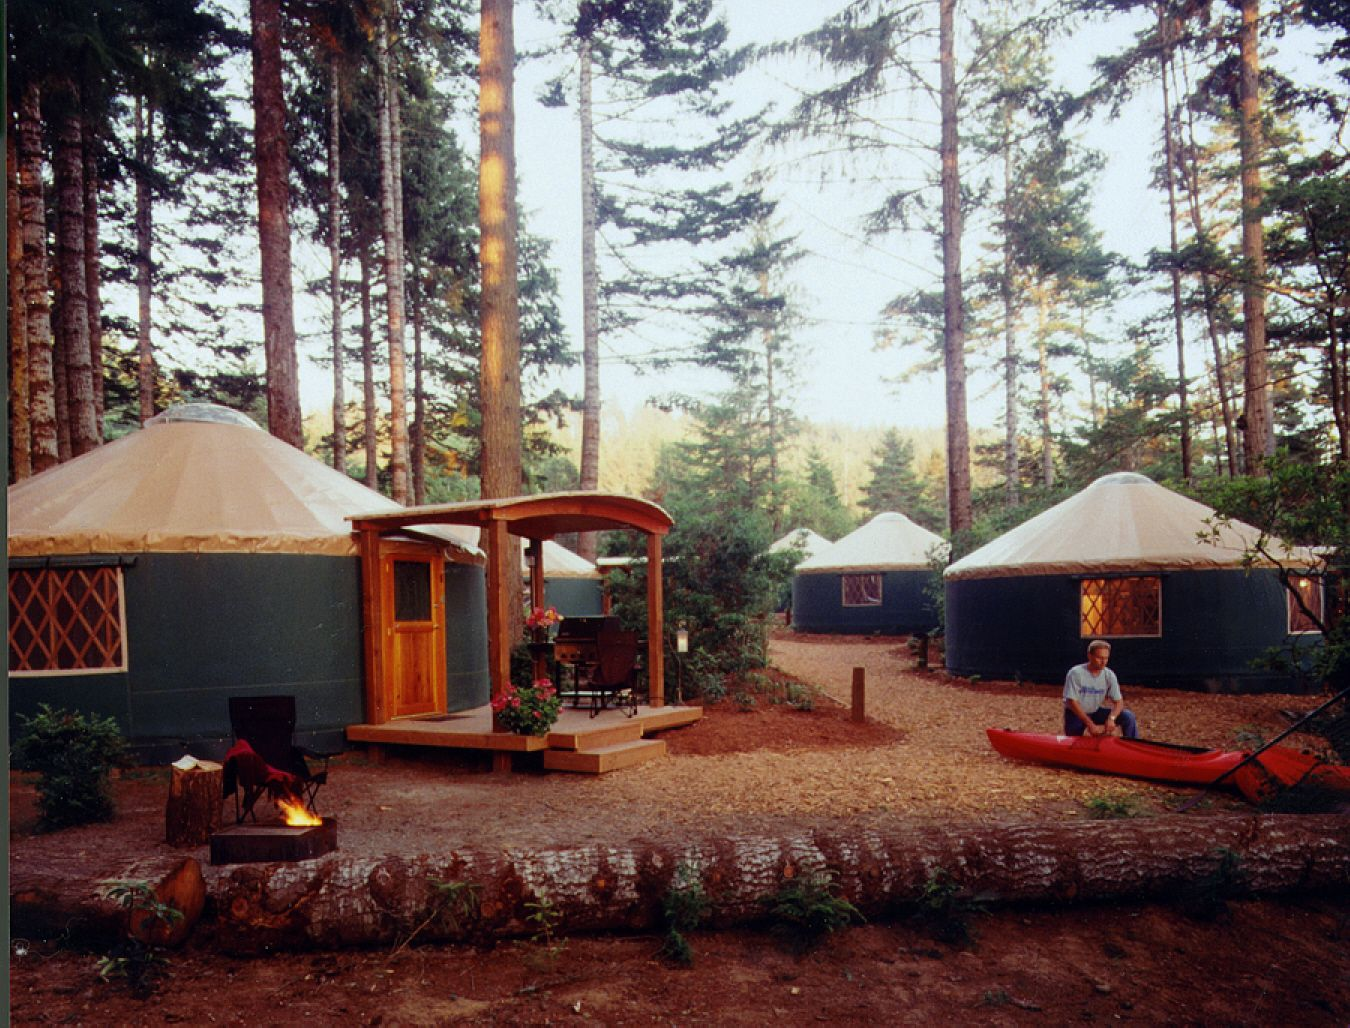 Did You Know In 1993 Oregon Became The First State U S To Include Yurts As A Camping Option I Think It Fair Statement Say Put